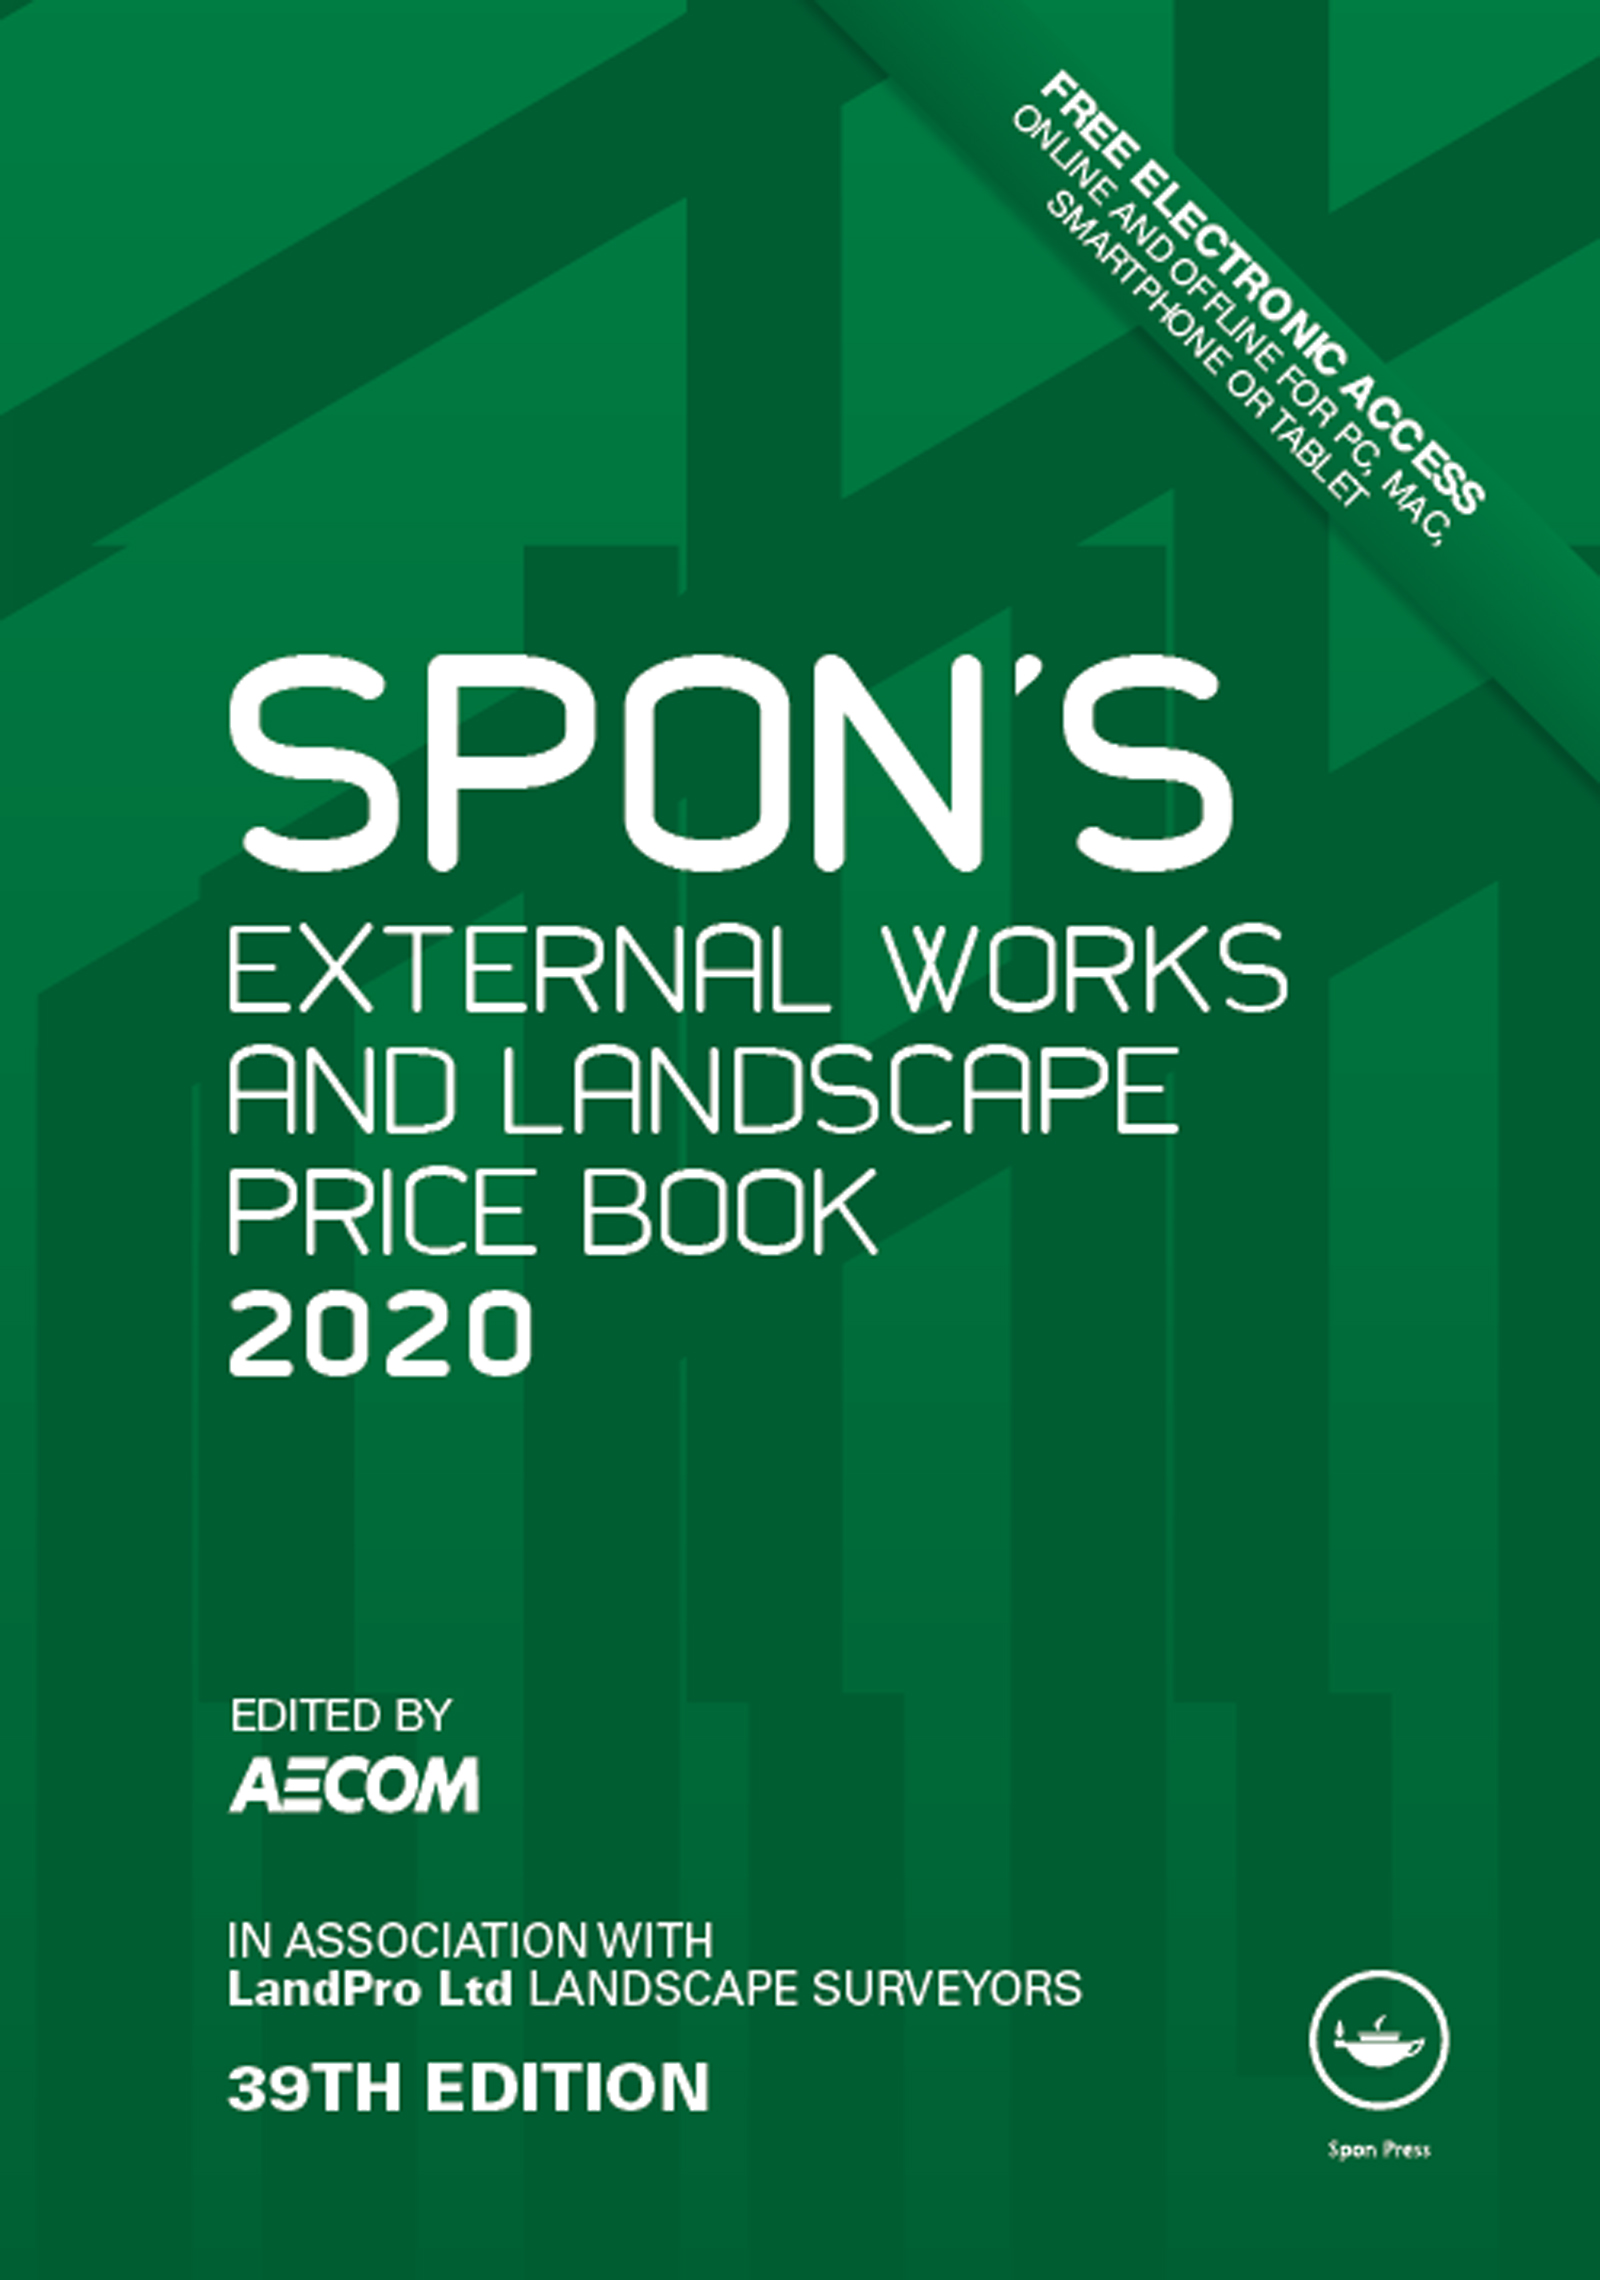 Spon's External Works and Landscape Price Book 2020 book cover